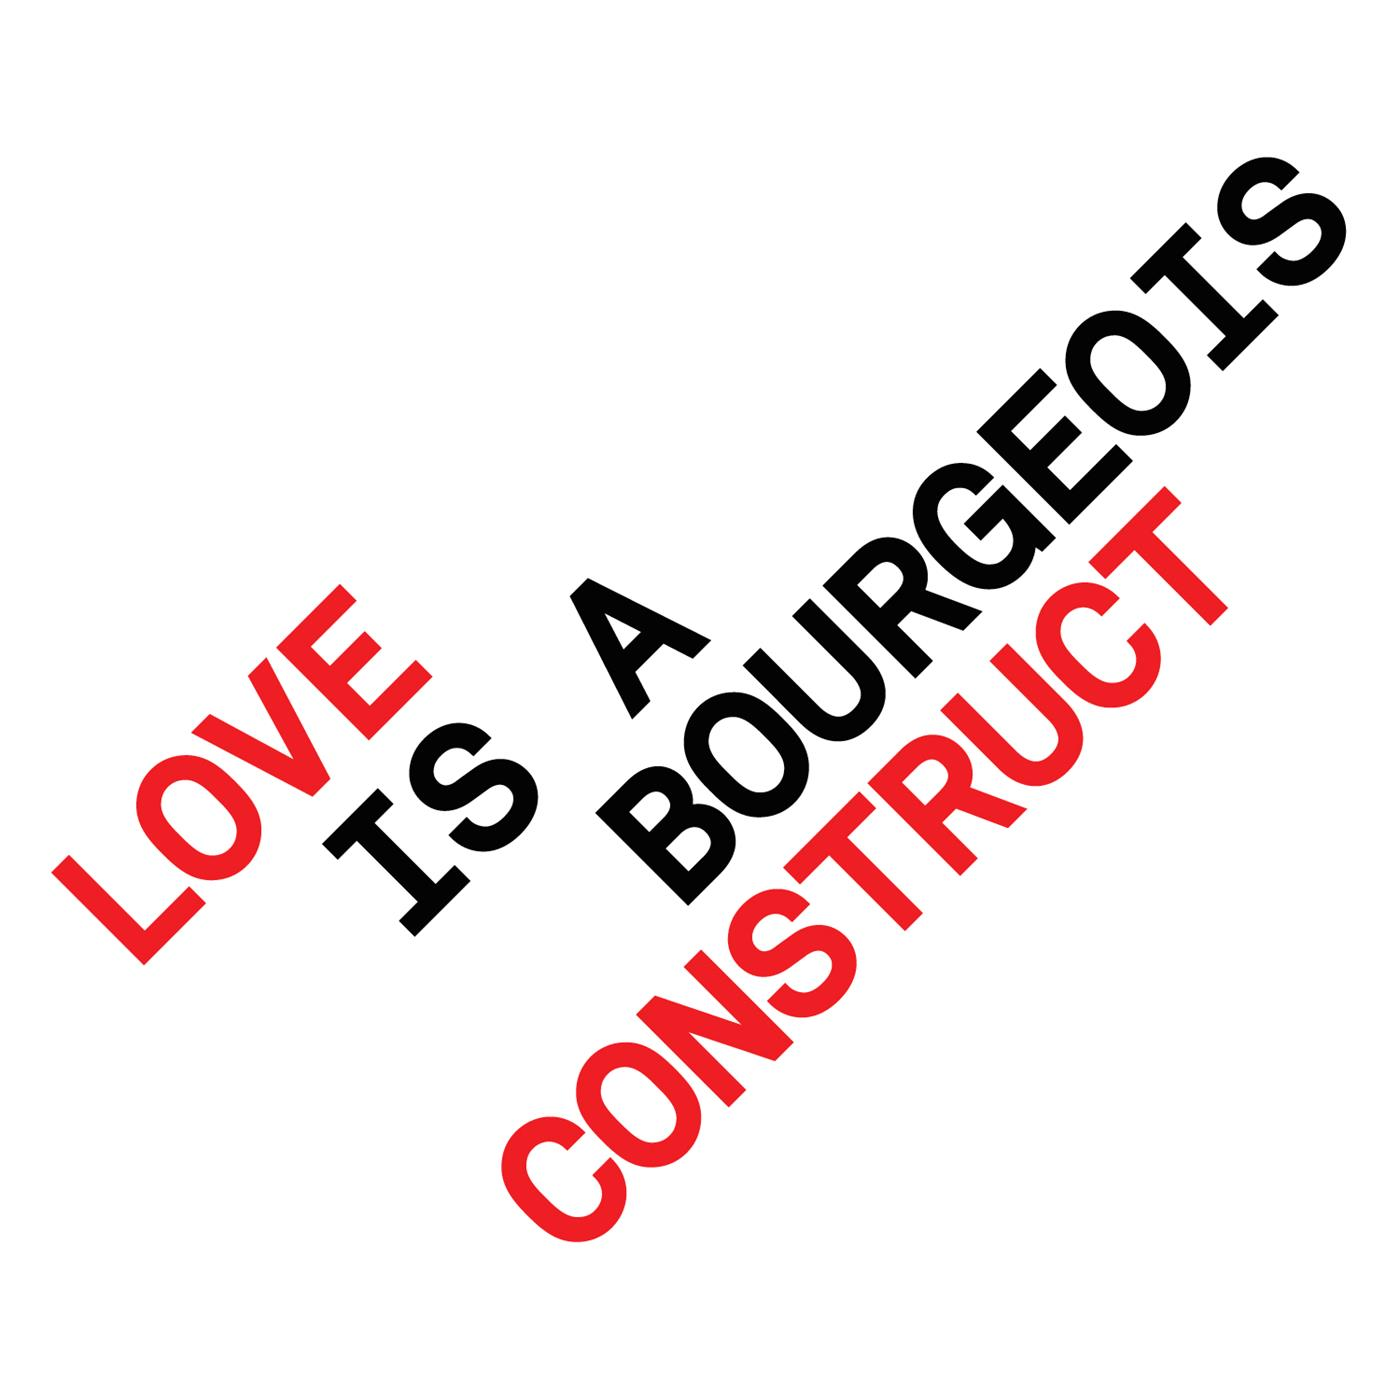 X20004VL1 X2  Pet Shop Boys Love Is a Bourgeois Construct (2x12'')